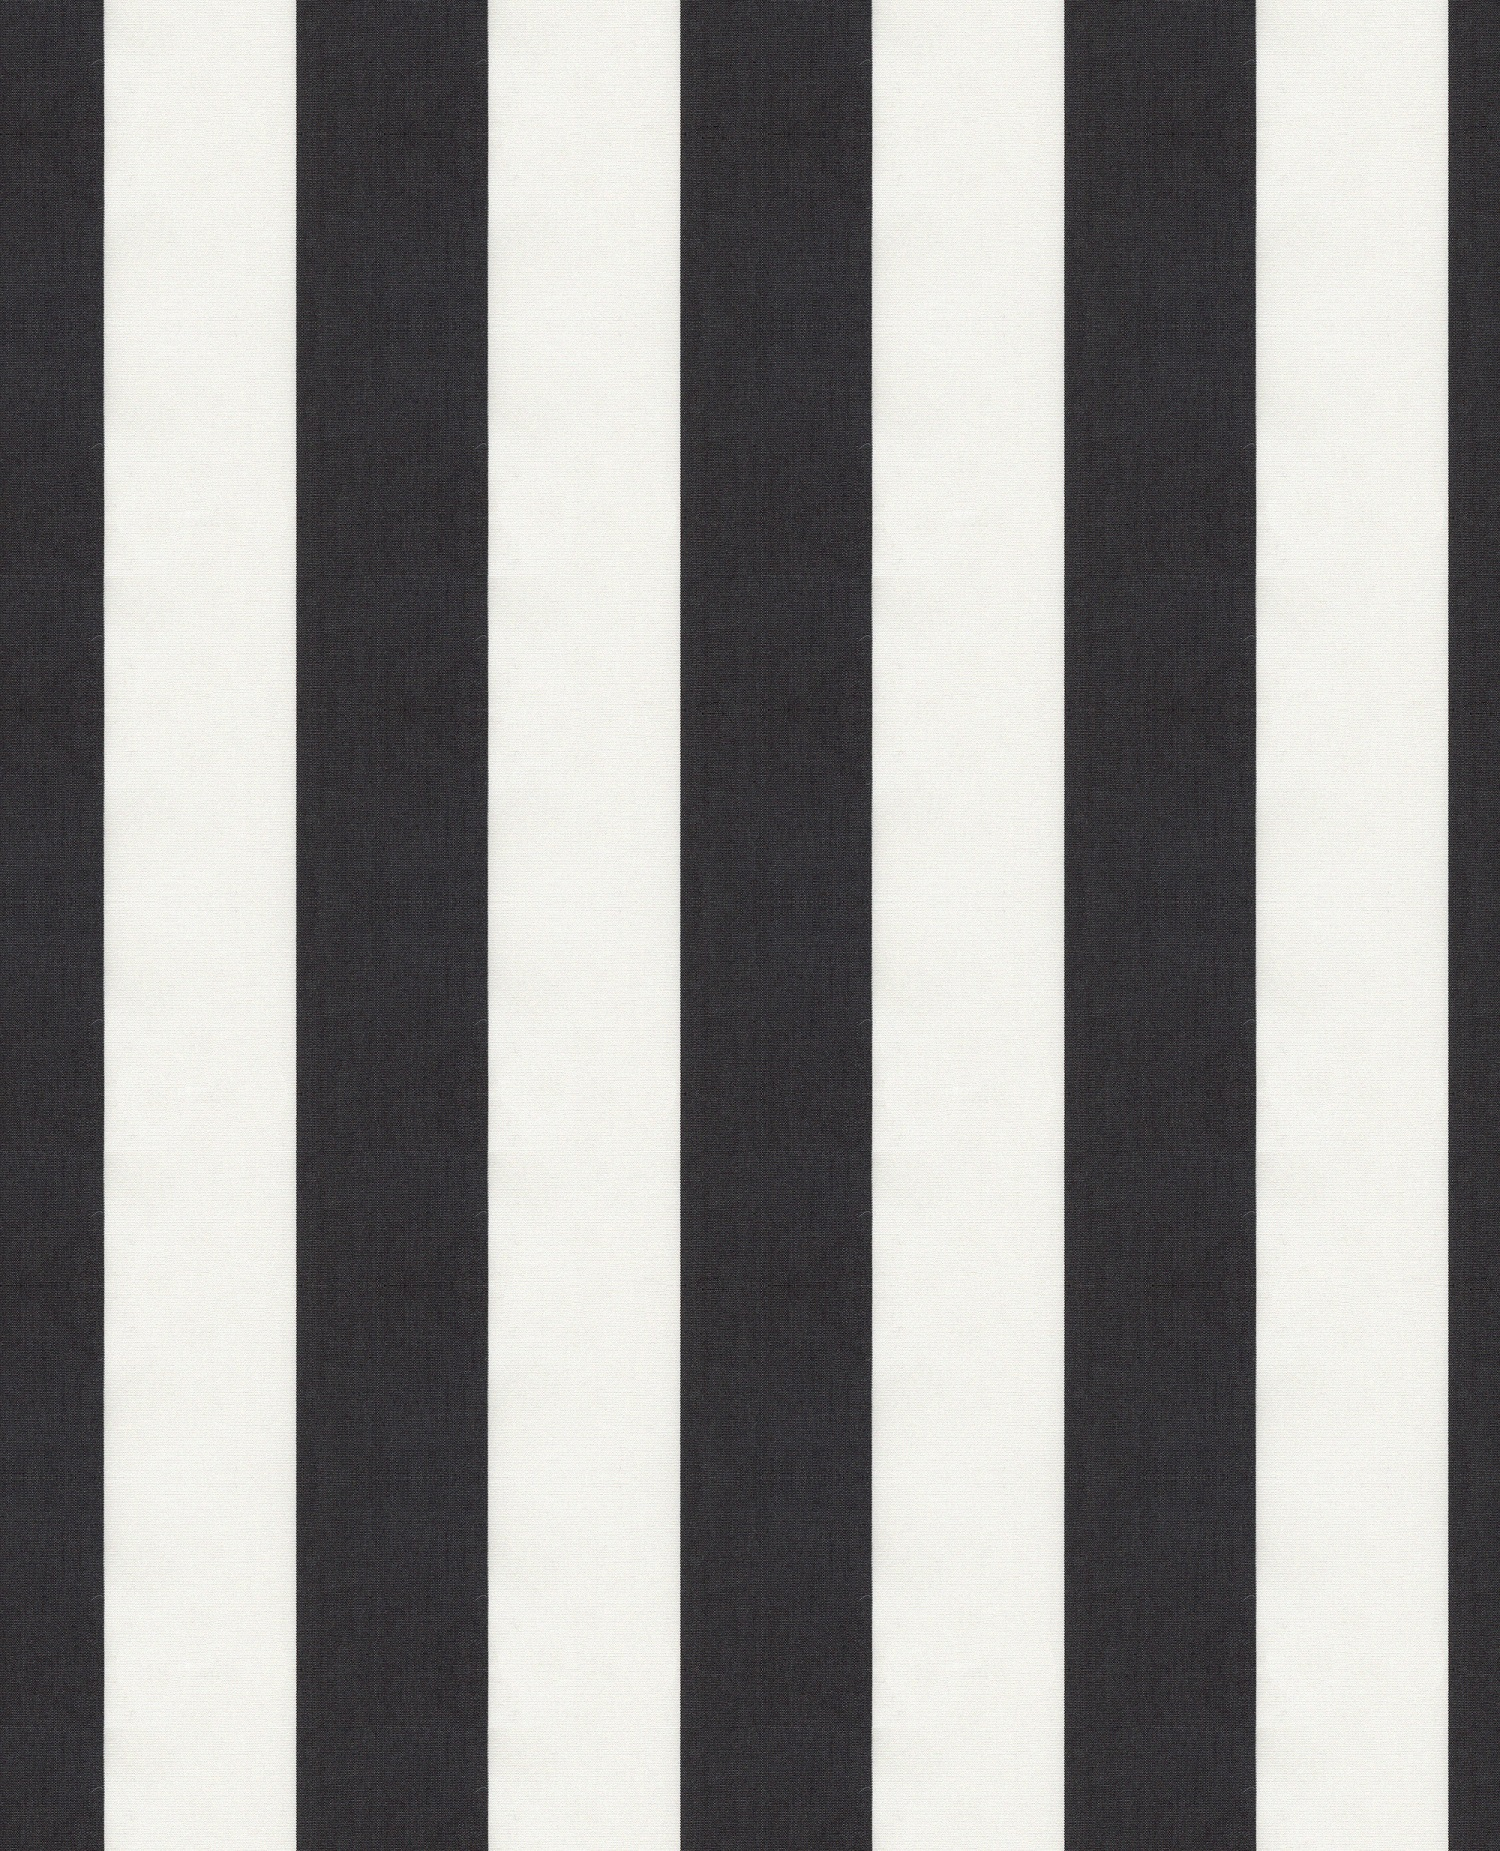 IKEA Sofia Fabric Black and White Stripes